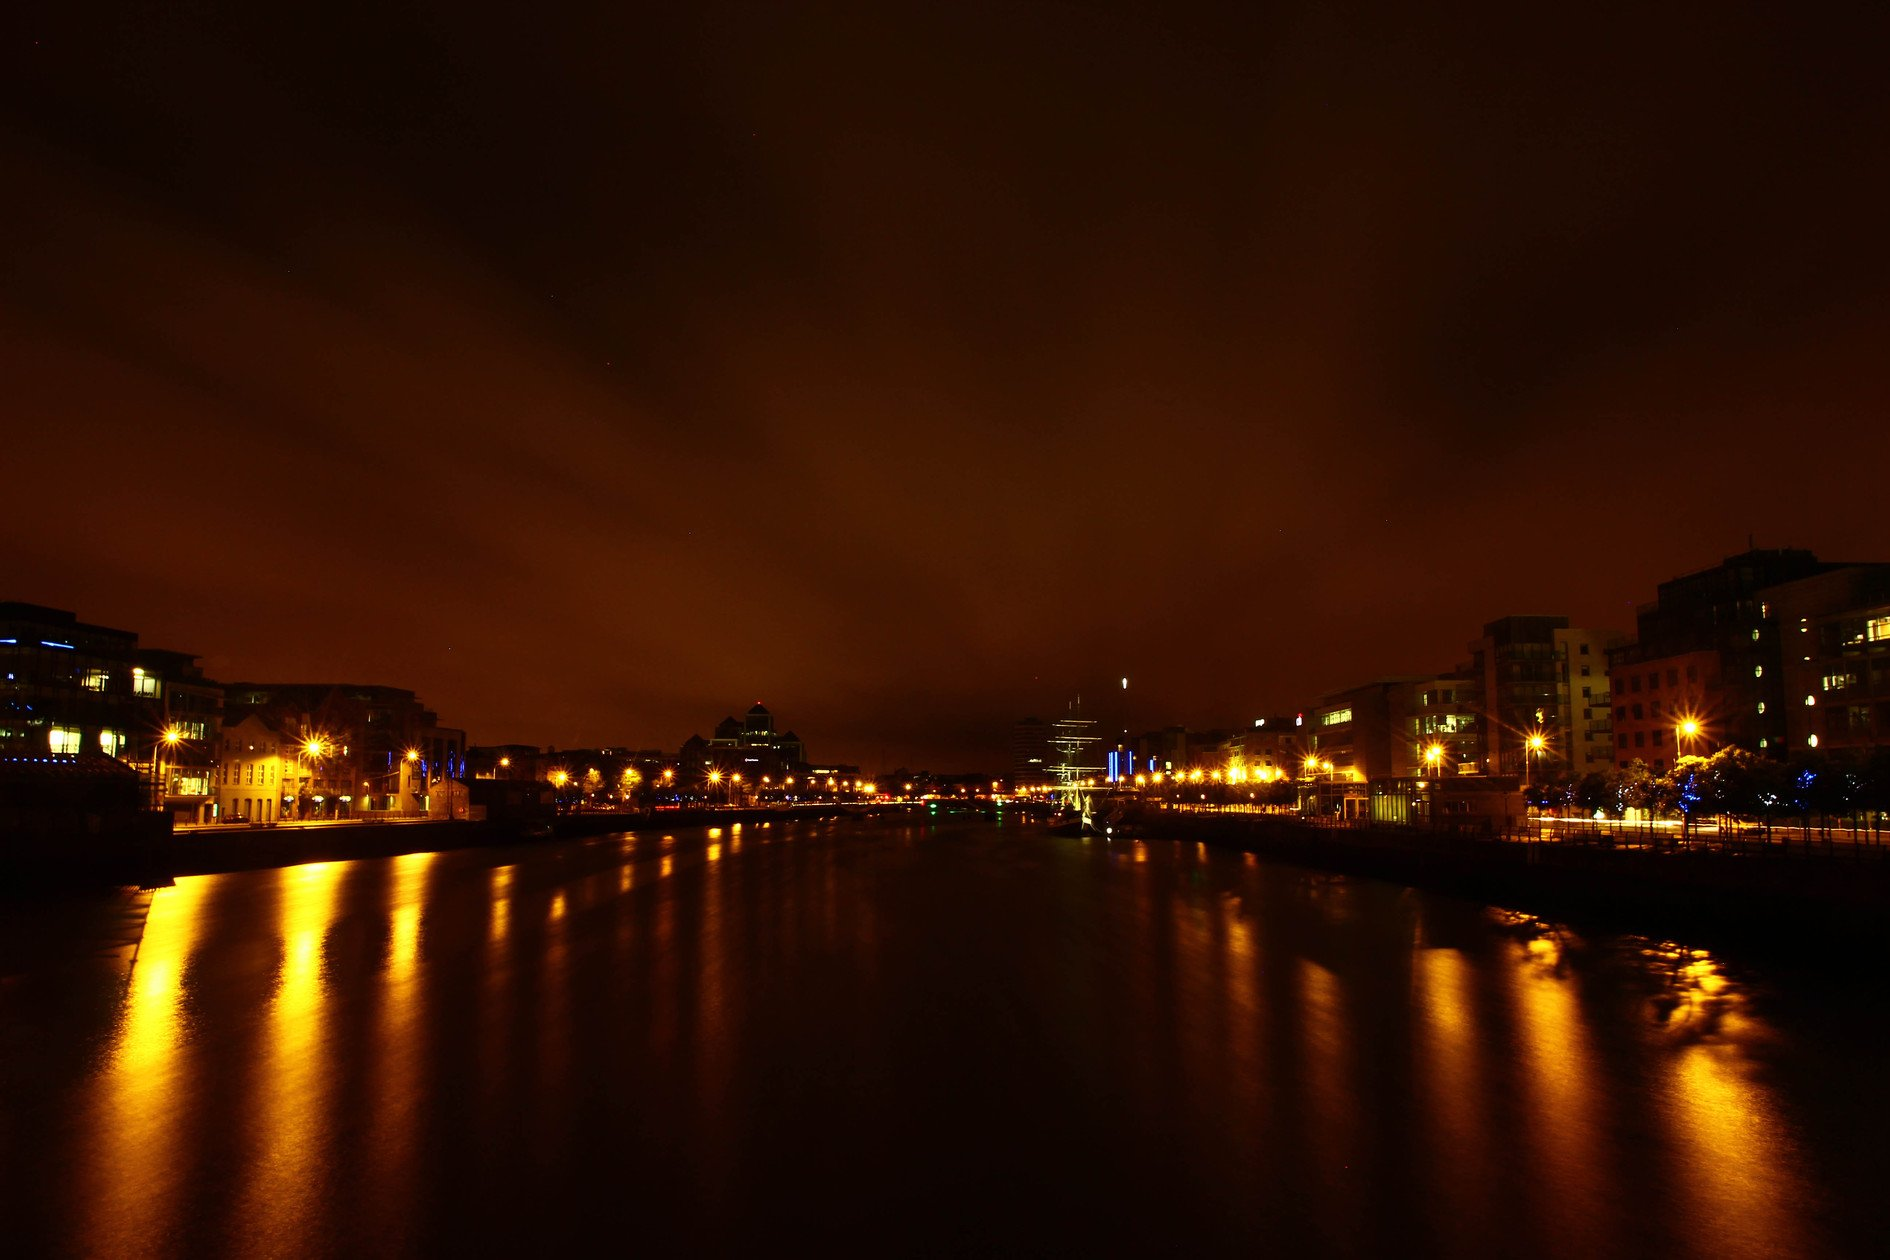 Dublin at night   Dublin   The City Pictures 1890x1260